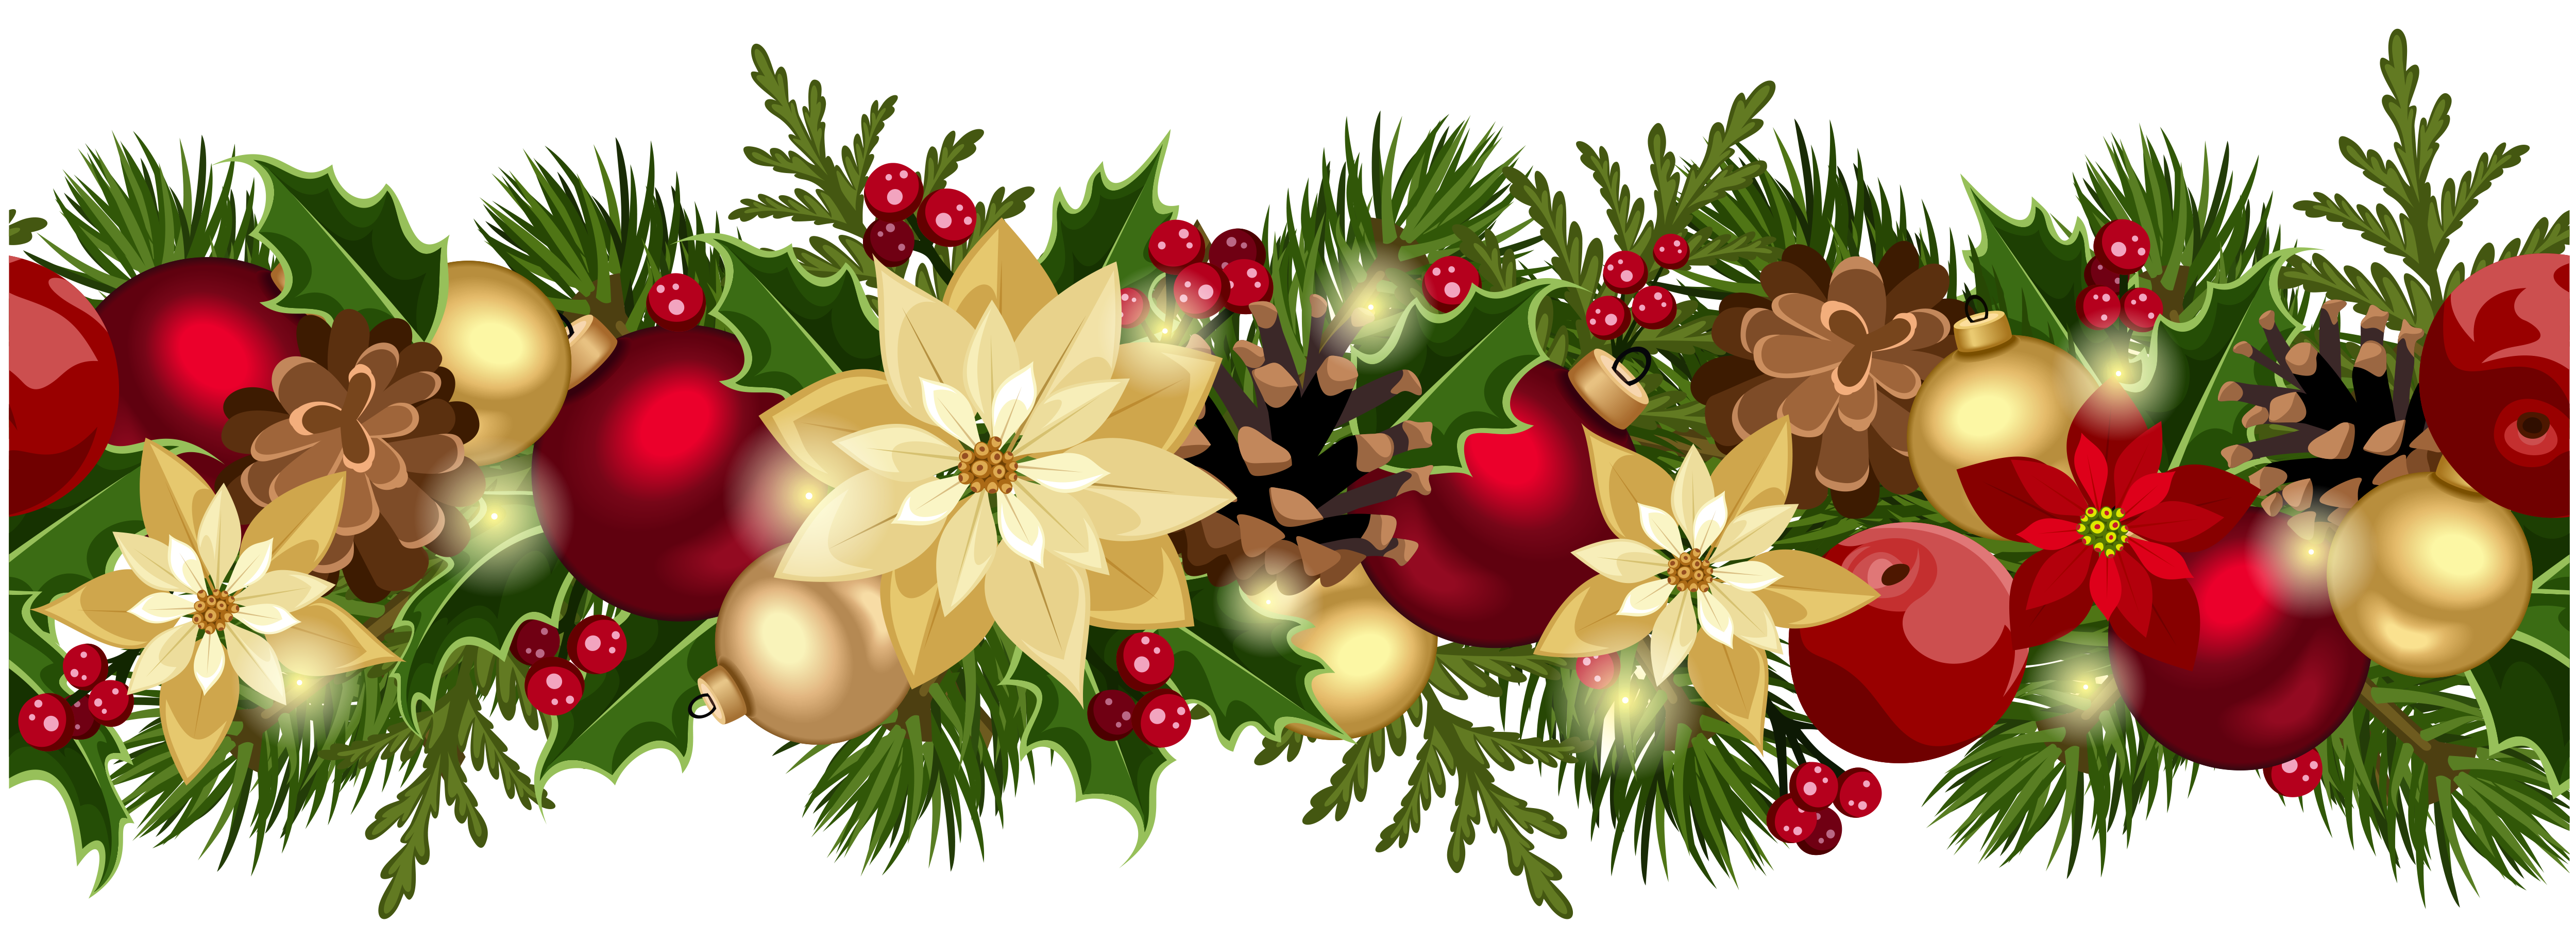 Christmas garland border transparent png. Holiday crafthubs background cover